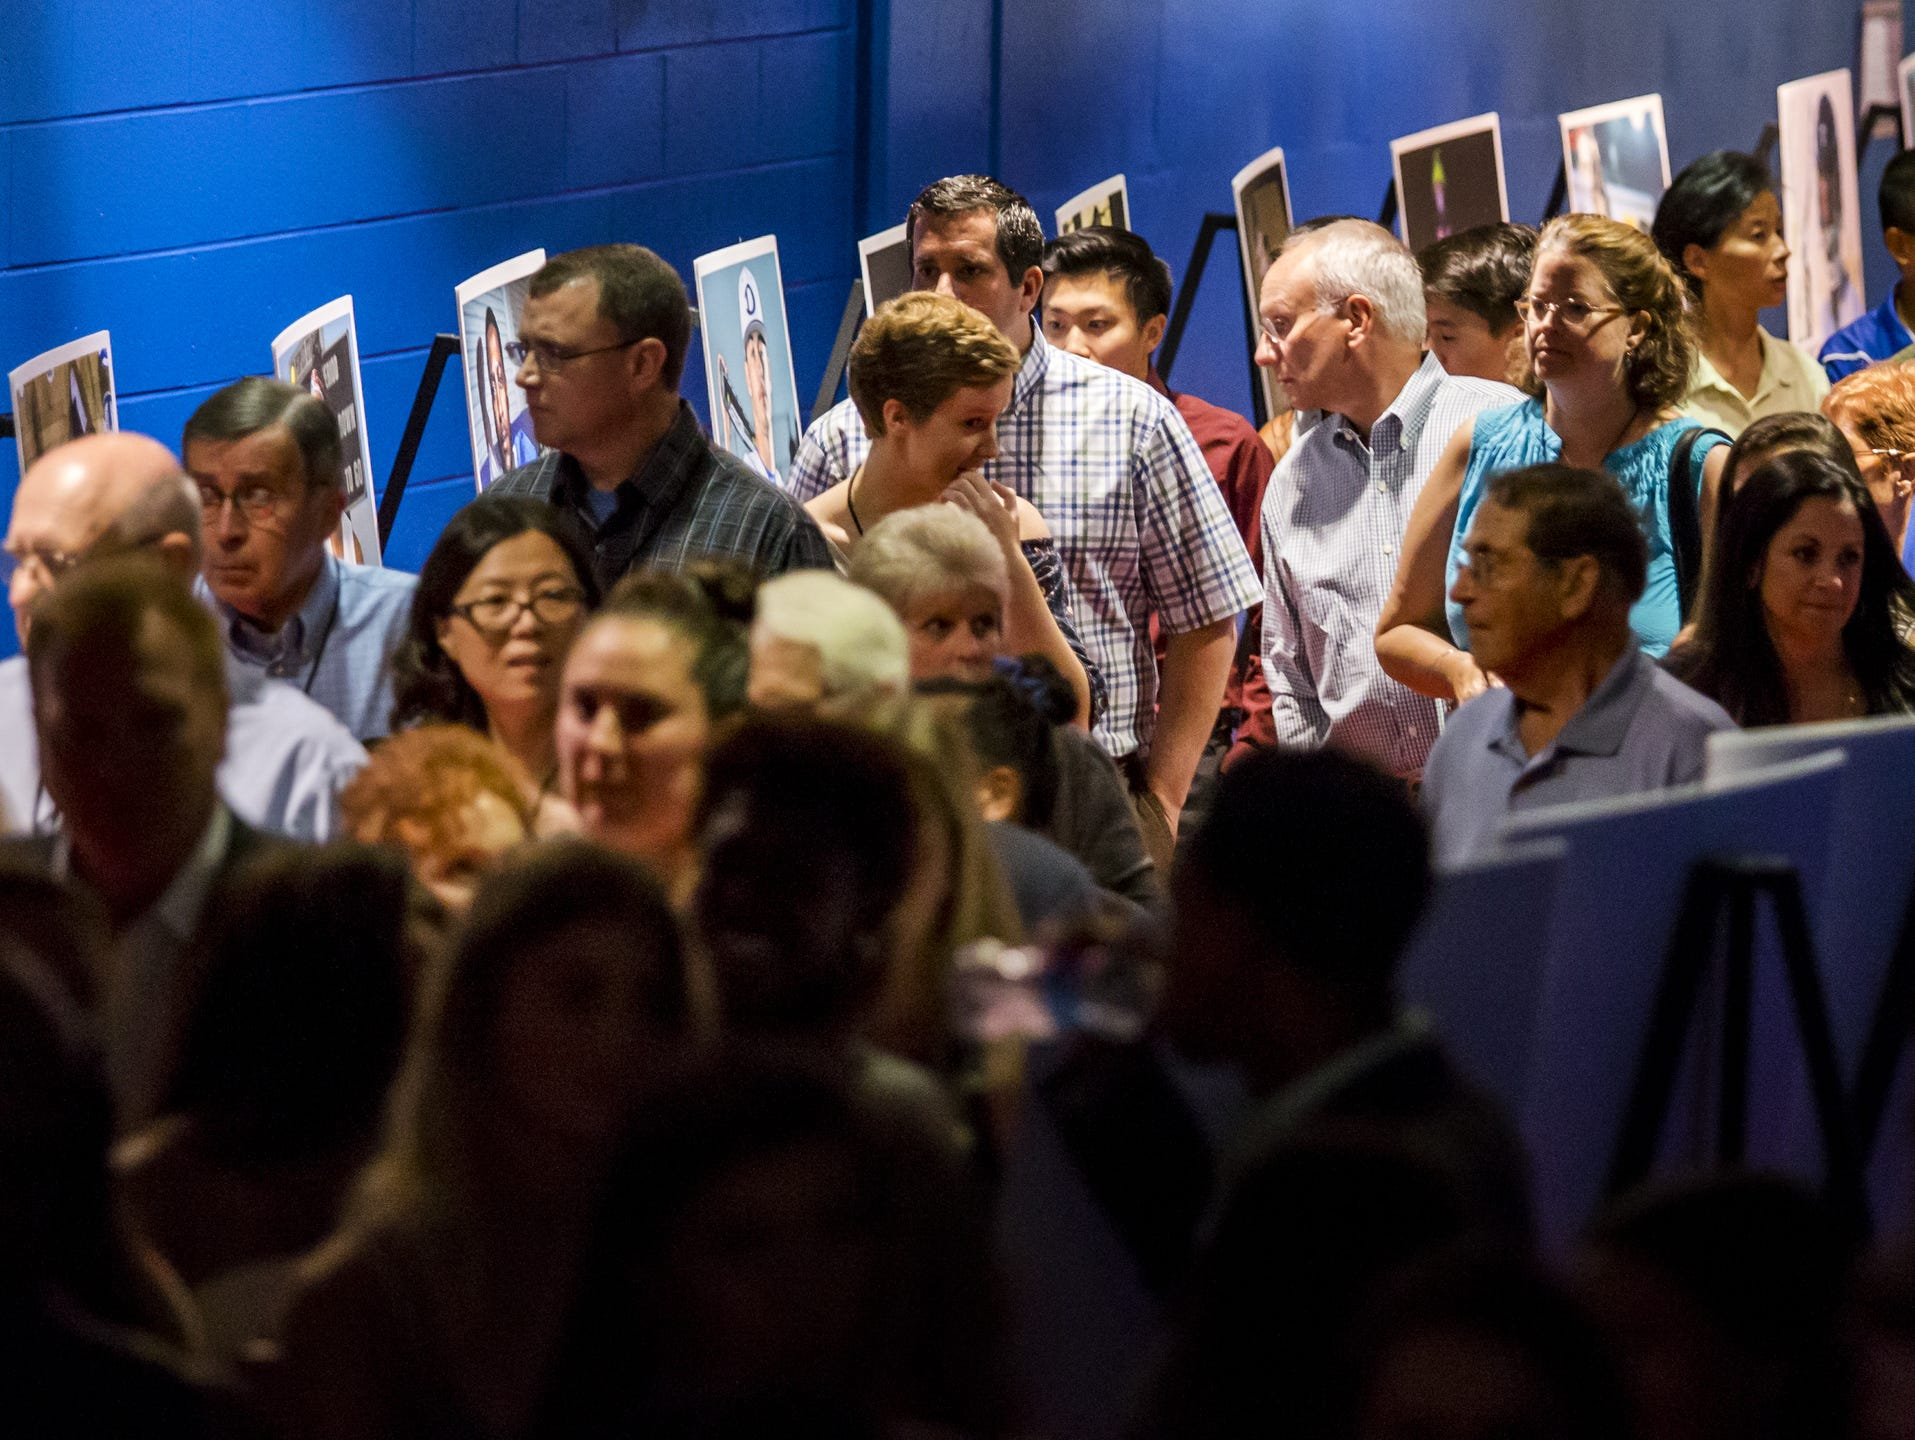 Guests at the Delaware Sports Awards banquet make their way down the red carpet at the Bob Carpenter Center at the University of Delaware in Newark on Wednesday evening.